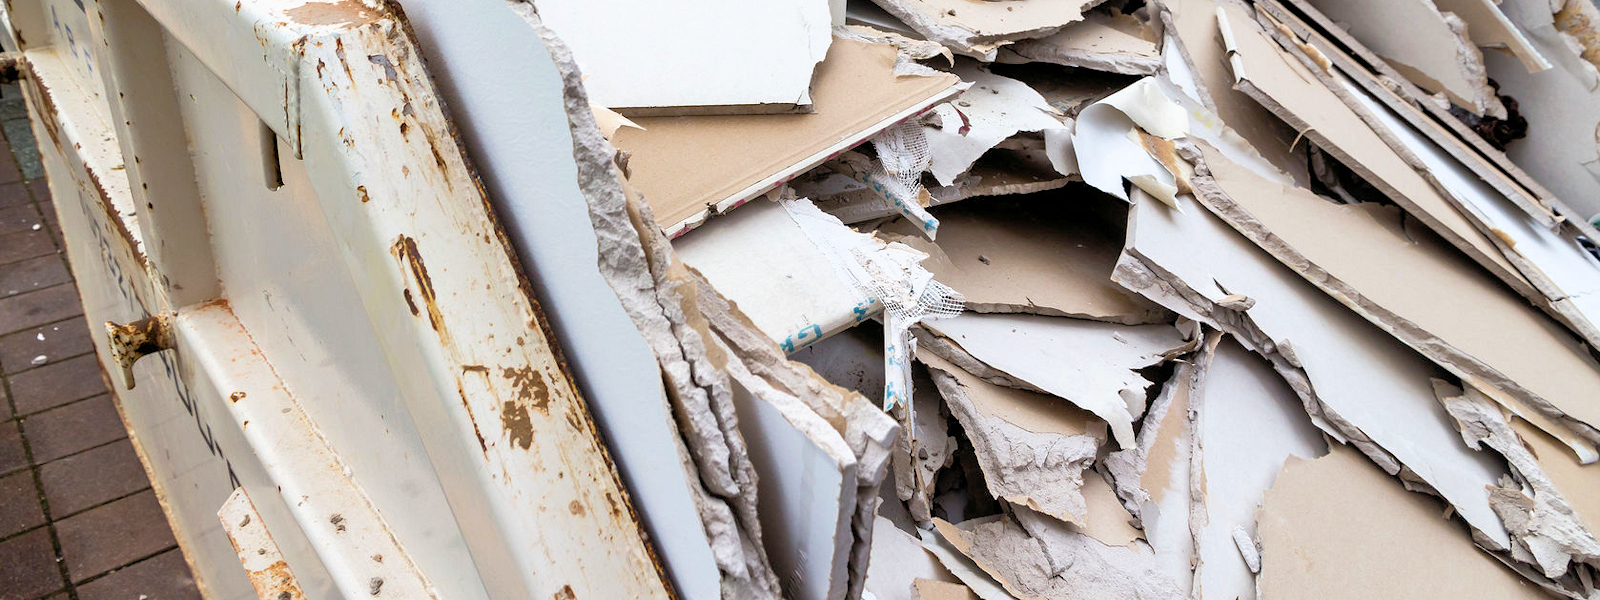 in a waste container stacks sheets of plasterboard for their disposal